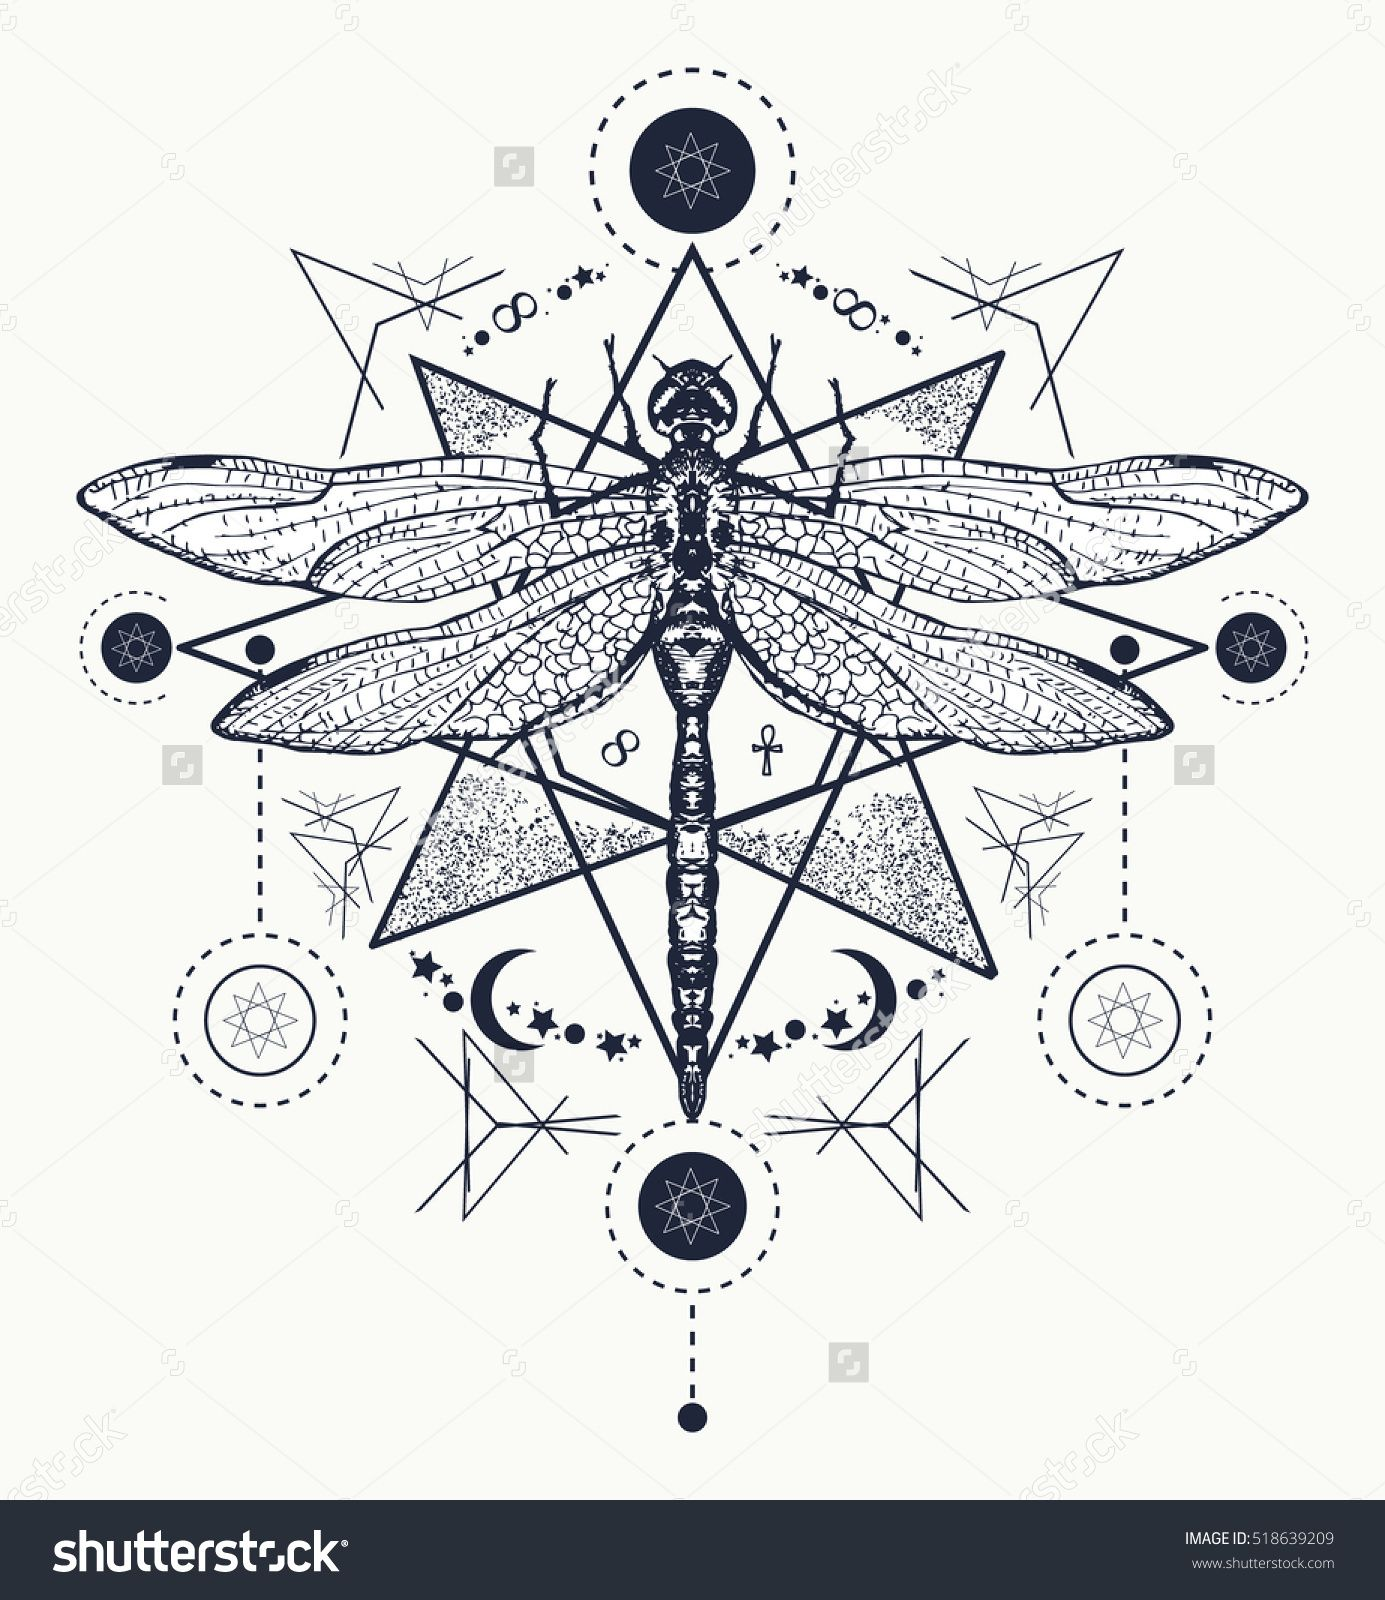 Stock vector dragonfly tattoo hand drawn mystical symbols and hand drawn mystical symbols and insects alchemy religion occultism spirituality coloring books buy this stock vector on shutterstock find other buycottarizona